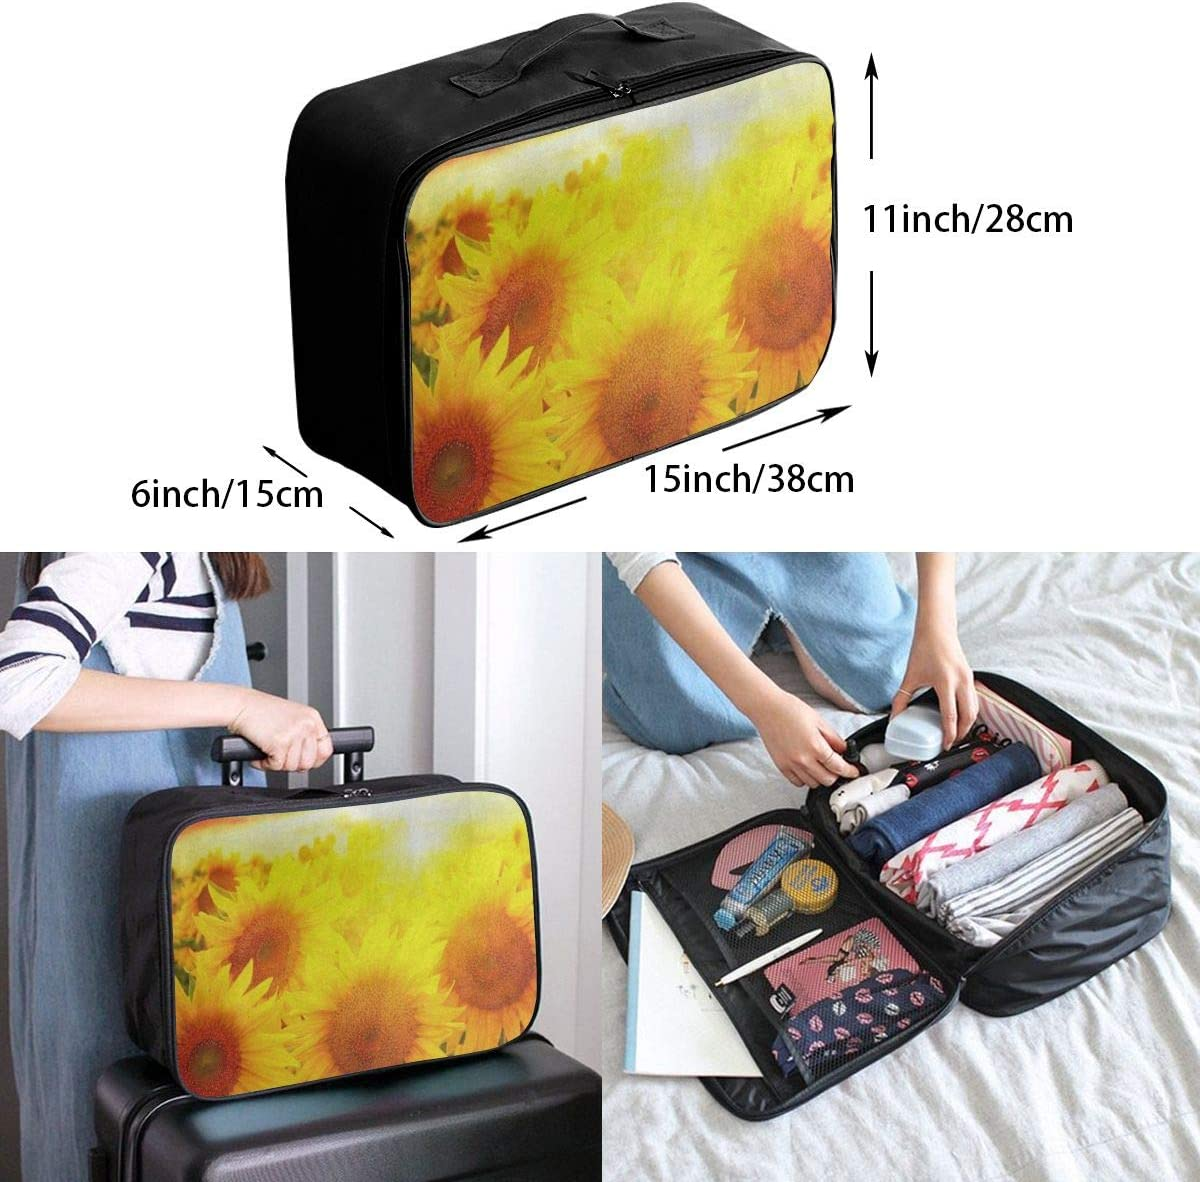 Travel Bags Colored Sunshine Sunflower Field Portable Foldable Personalized Trolley Handle Luggage Bag